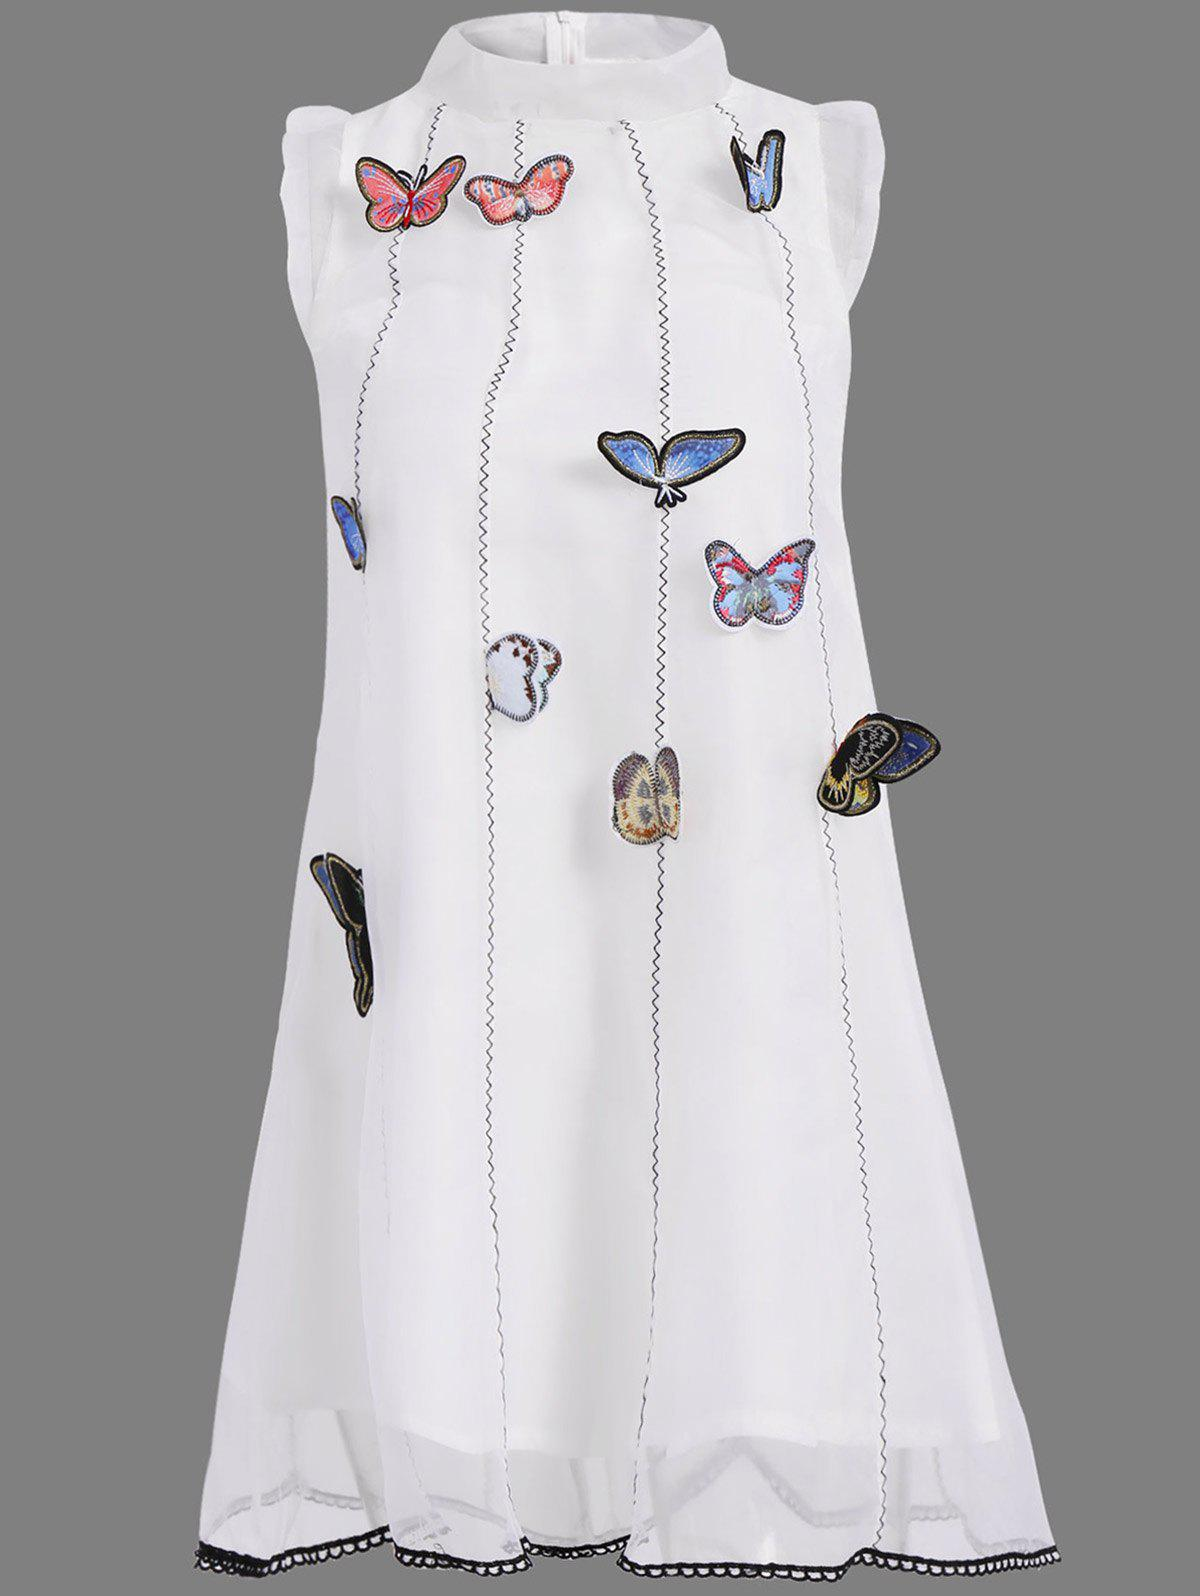 Graceful Stand-Up Collar Sleeveless Embroidered Butterfly Embellished A-Line Women's Dress - WHITE S